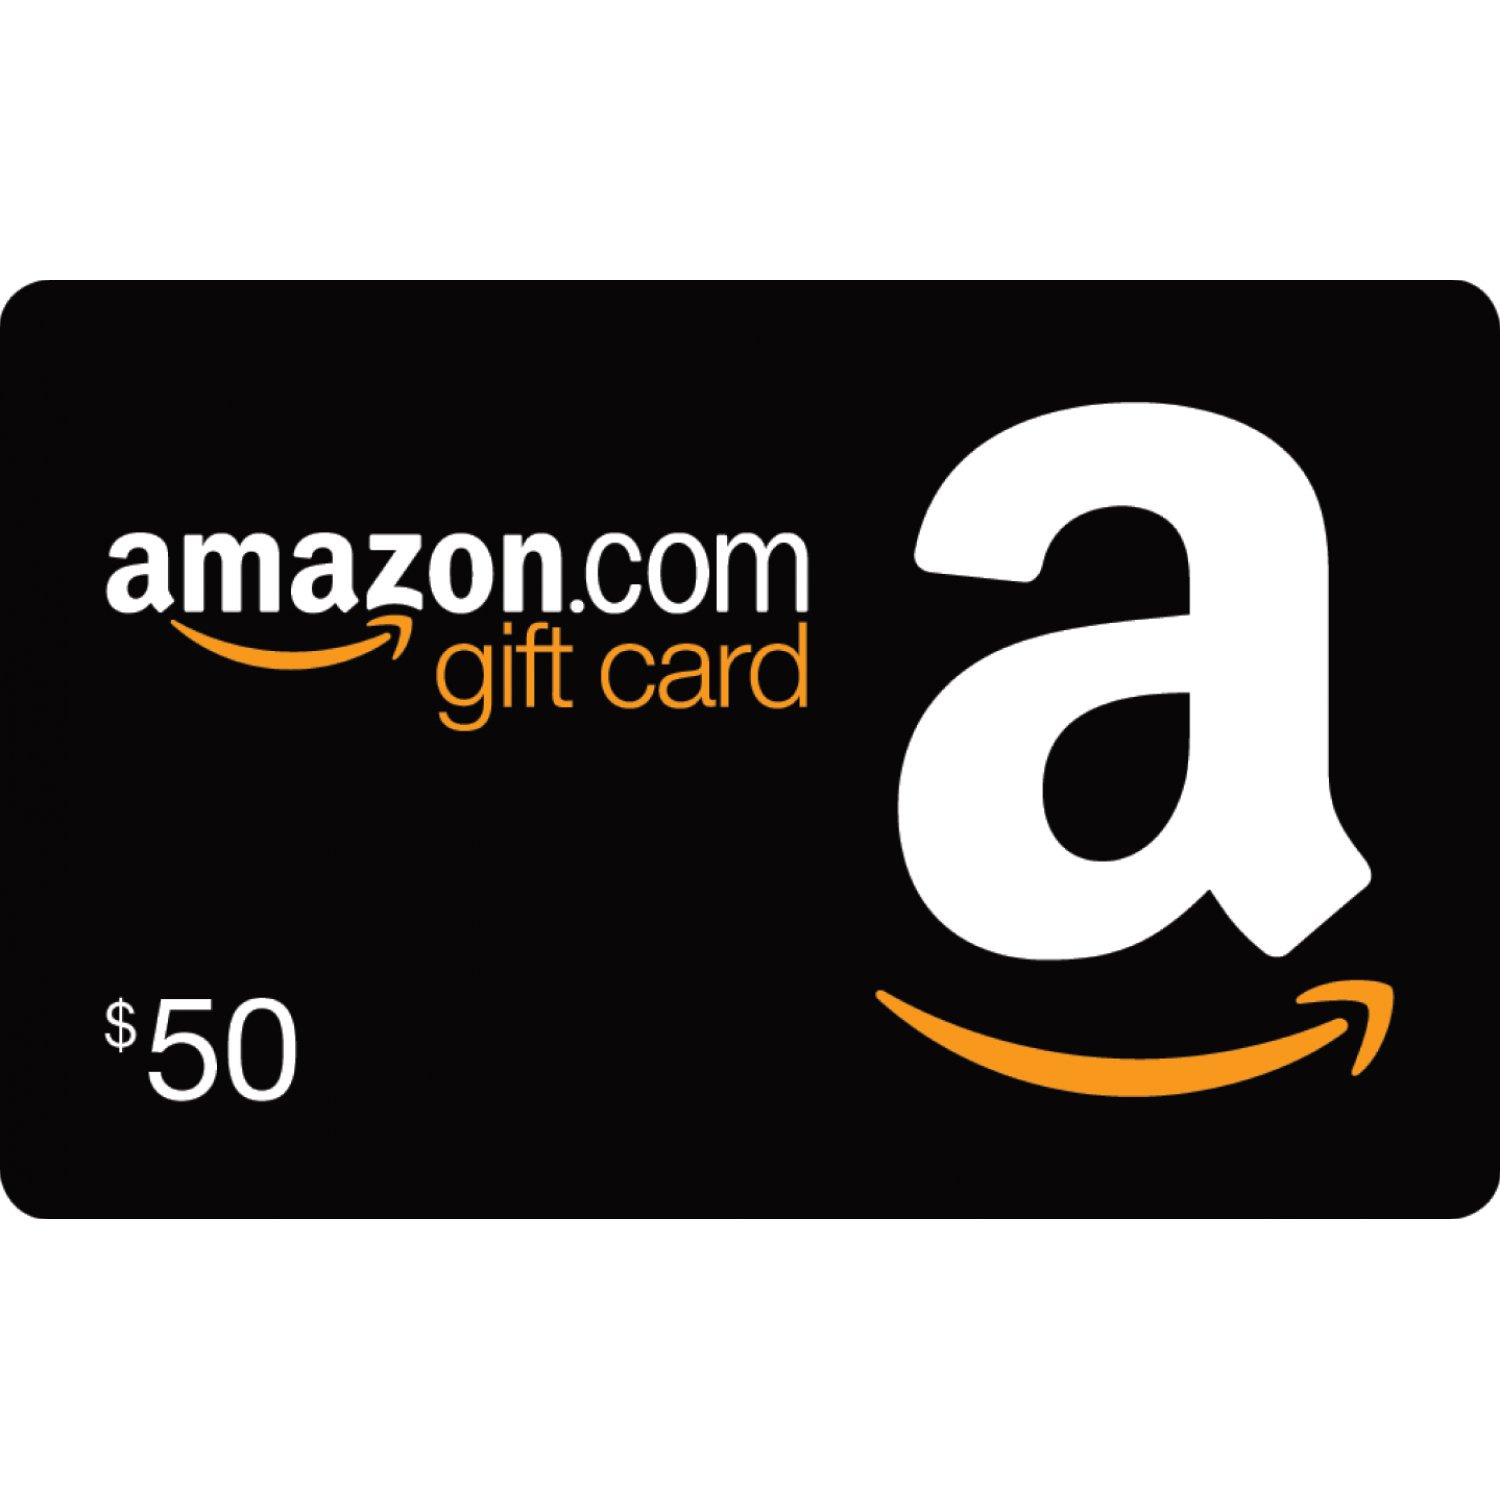 Who Sells Amazon Gift Cards? List Of